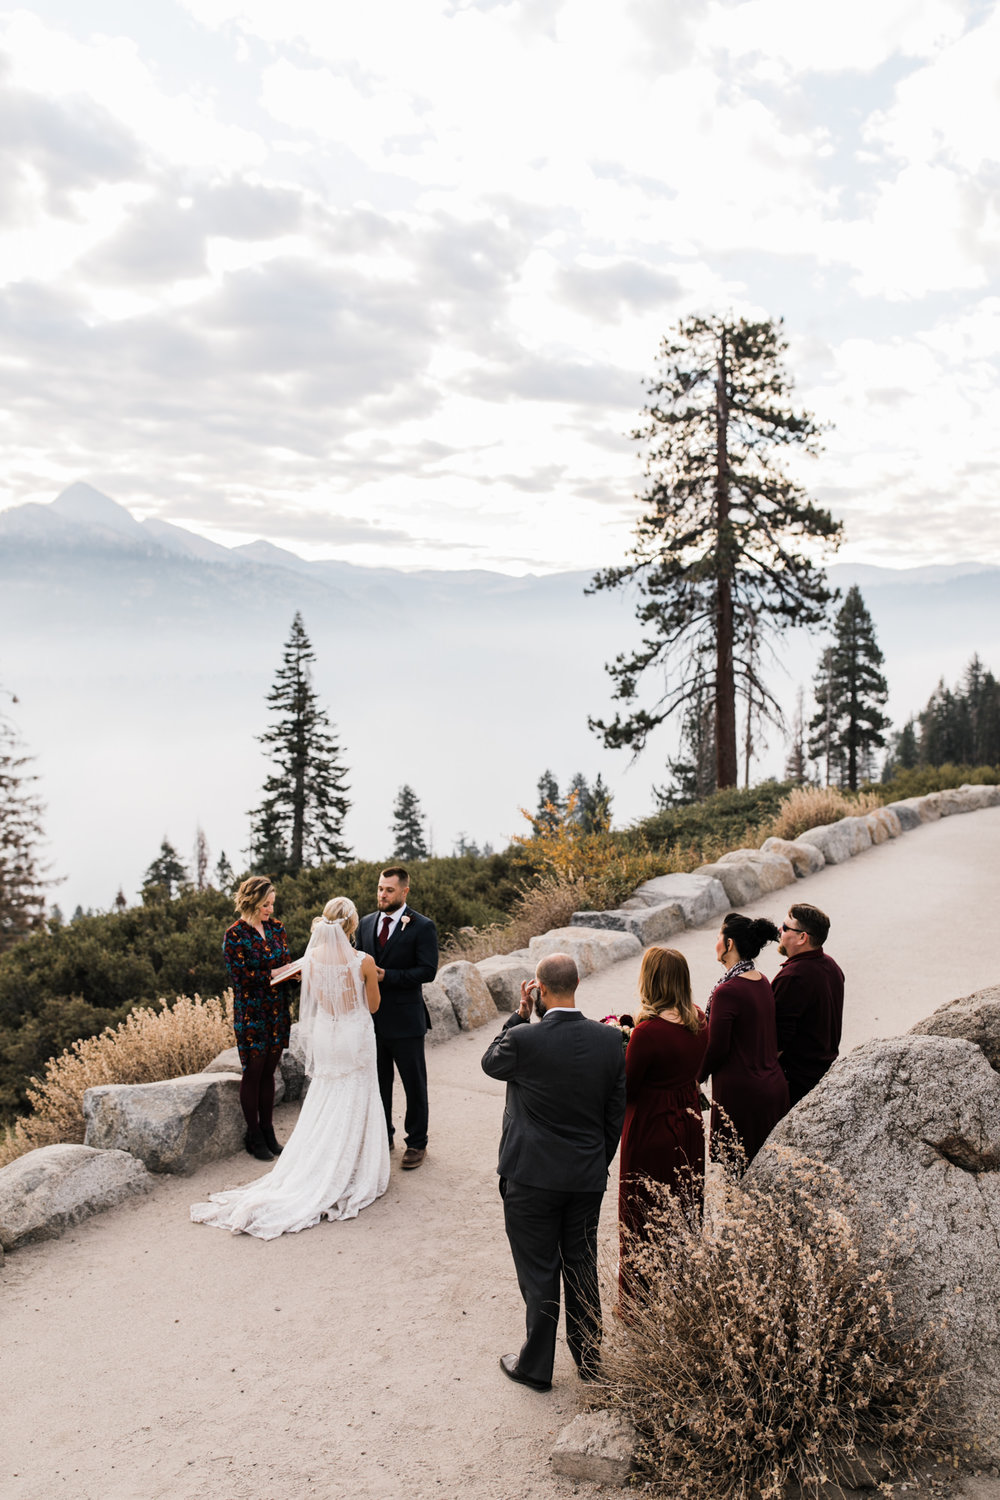 yosemite national park sunrise elopement | destination adventure wedding photographers | the hearnes adventure photography | www.thehearnes.com